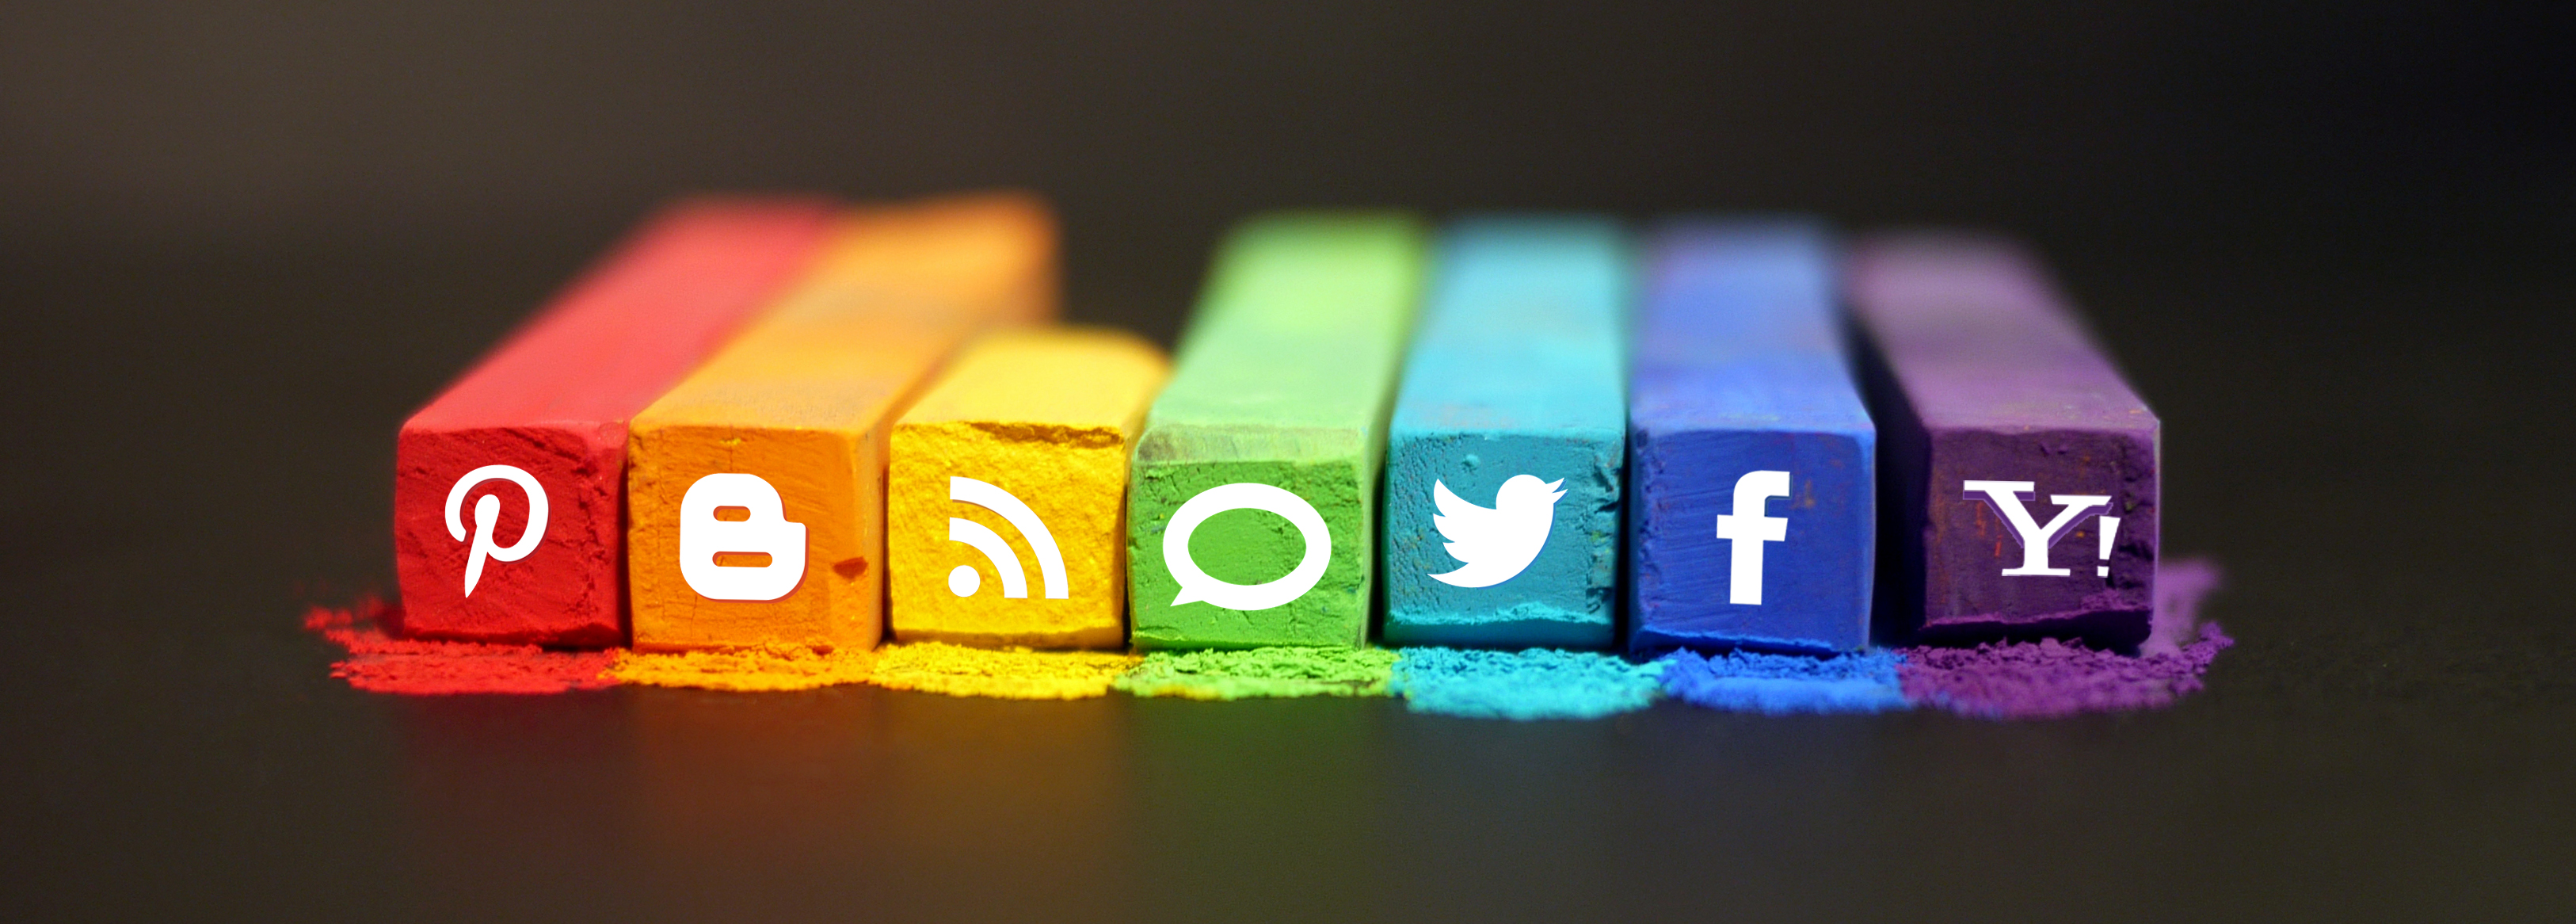 The Best Practices For Social Media Profile And Cover Photo